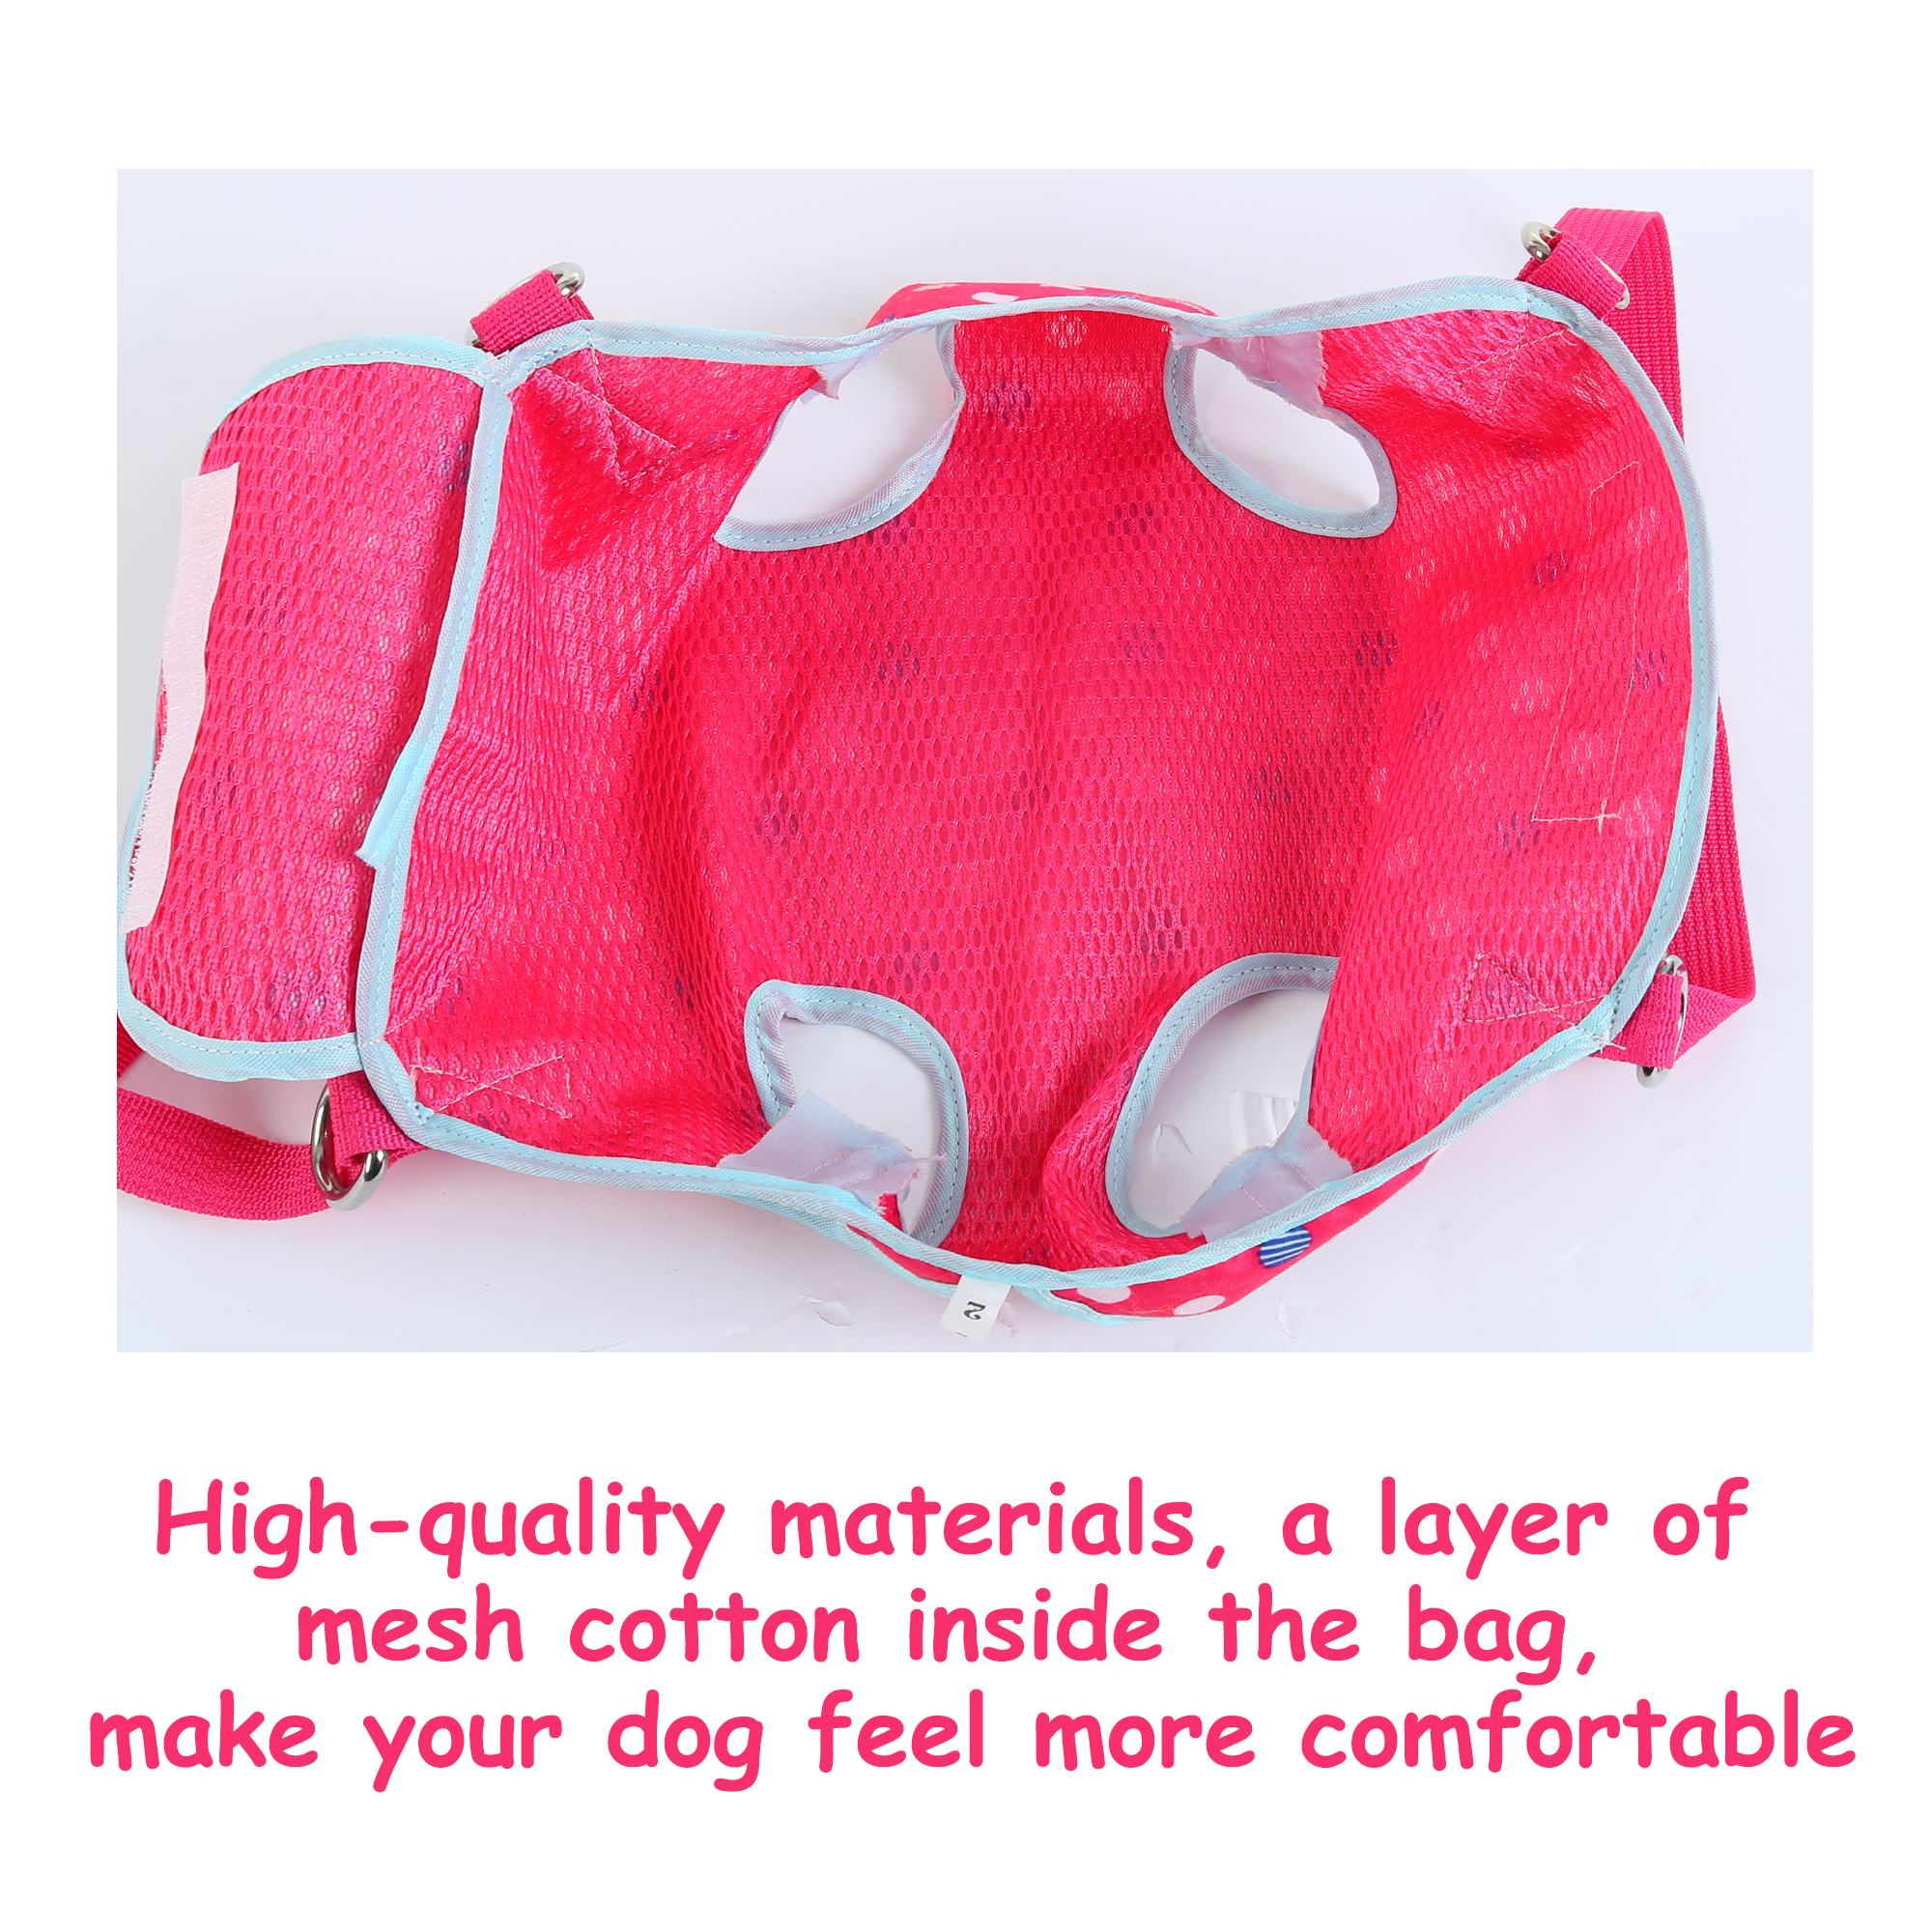 Pet Carrier Backpack, Puppy Holder, Pouch Single Shoulder Carry Tote L Fuchsia - image 5 of 7